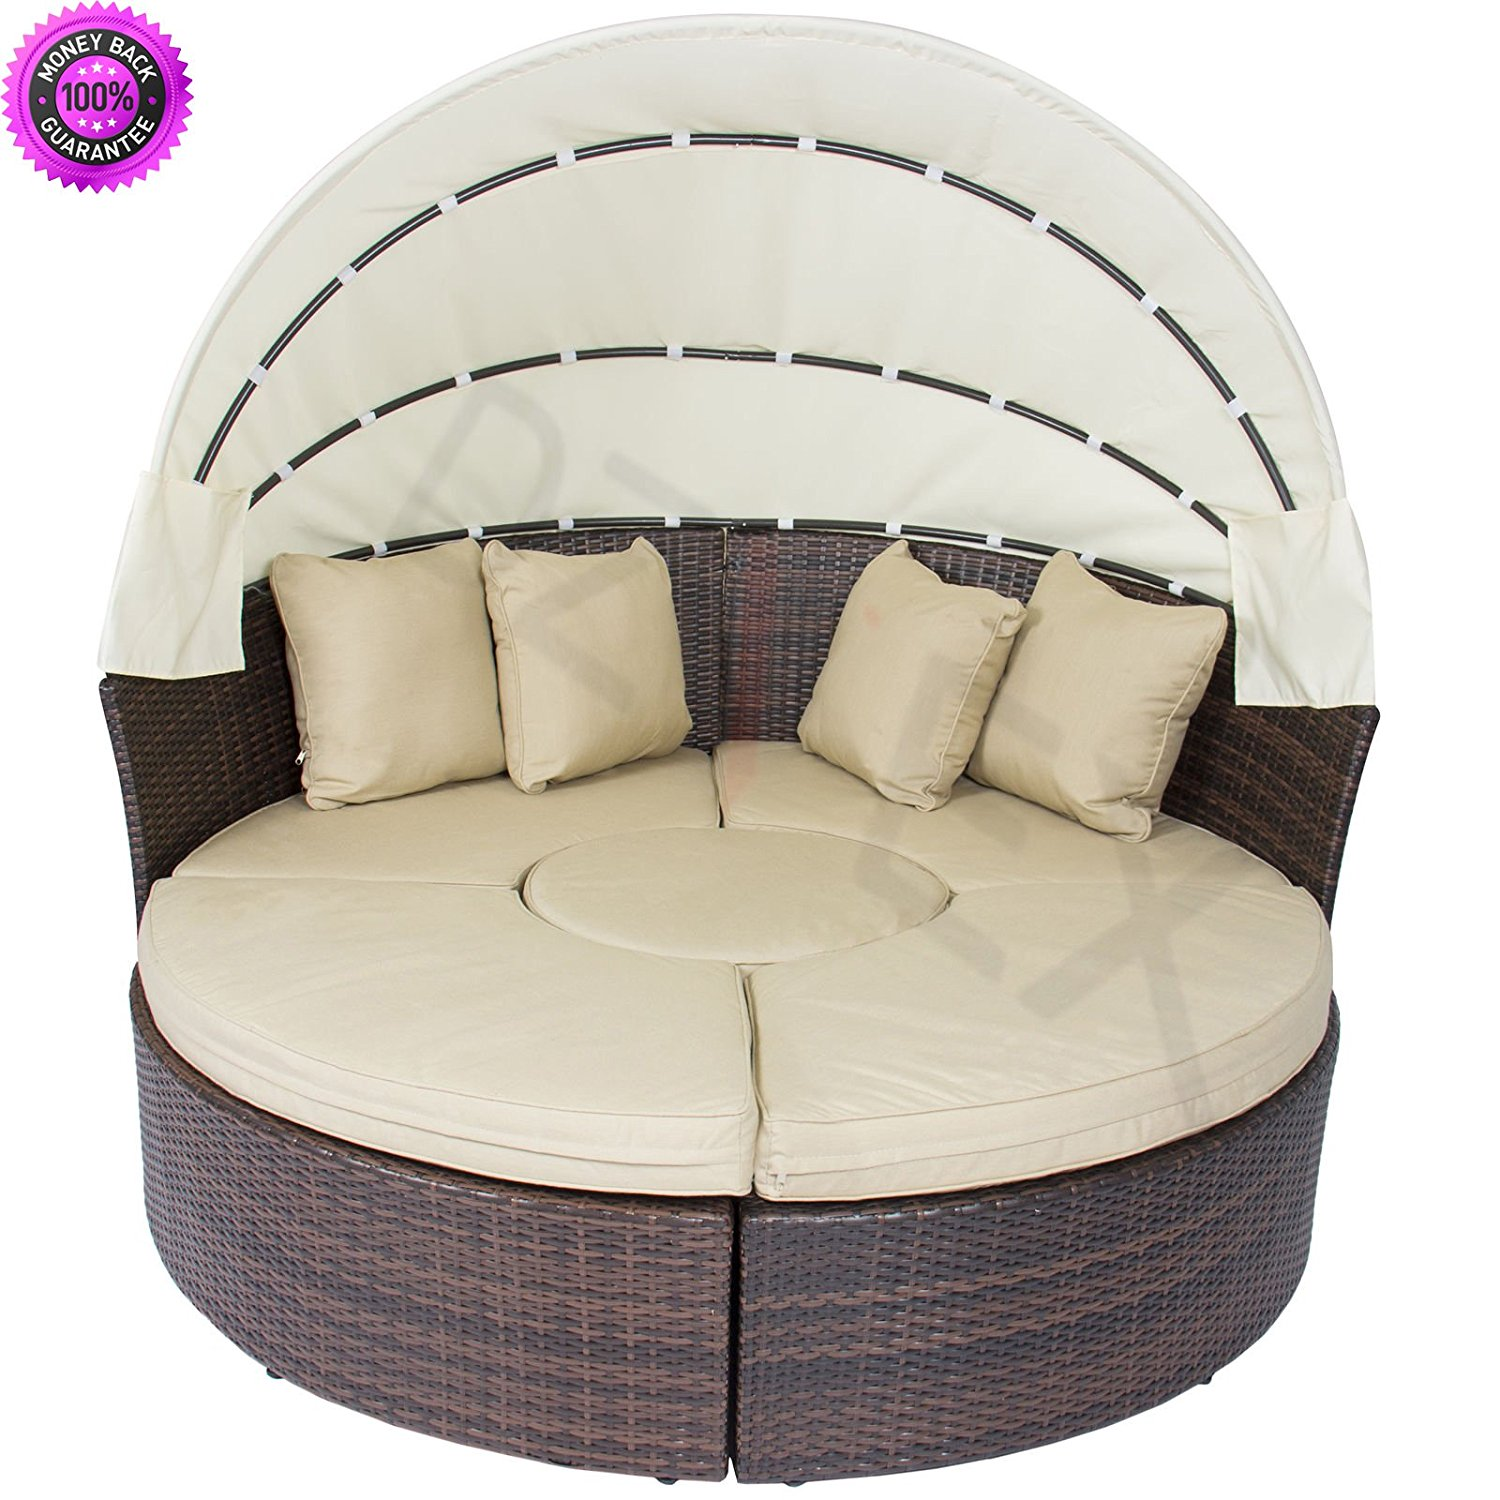 DzVeX Outdoor Patio Sofa Furniture Round Retractable Canopy Daybed Brown Wicker Rattan And patio furniture home depot patio furniture clearance sale patio furniture sets patio furniture lowes